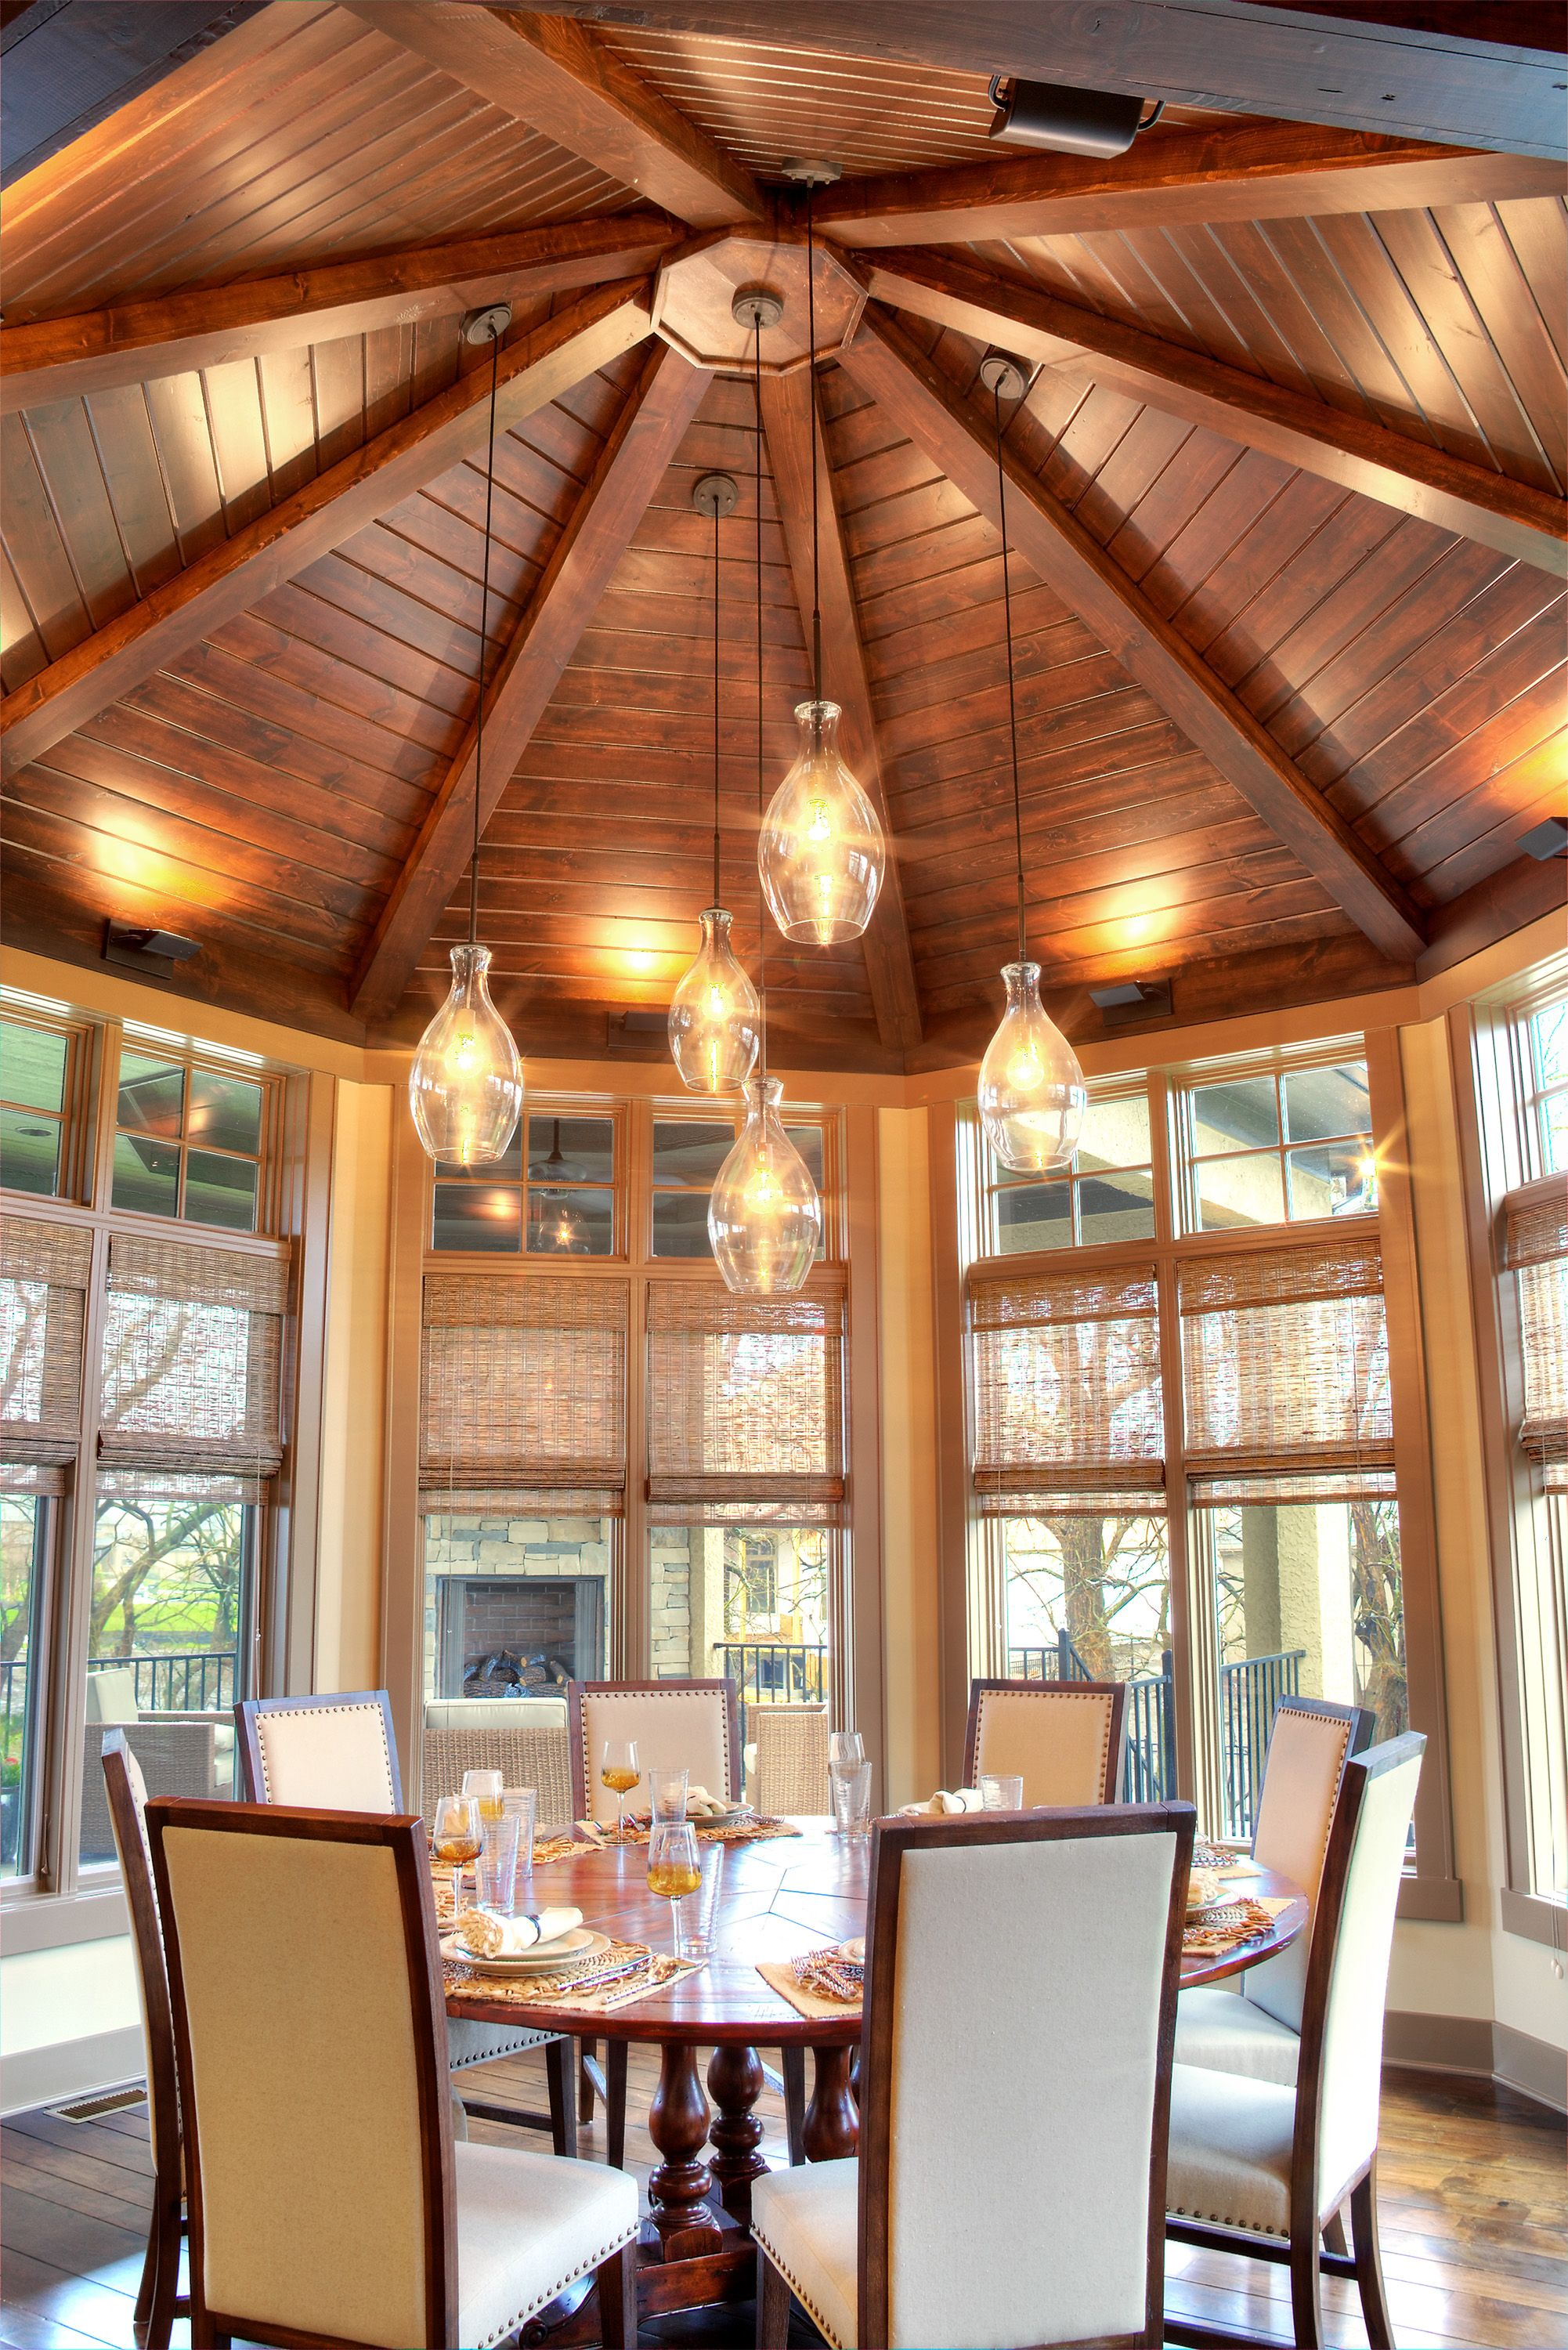 This Amazing Octagonal Dining Room With A Vaulted Wood